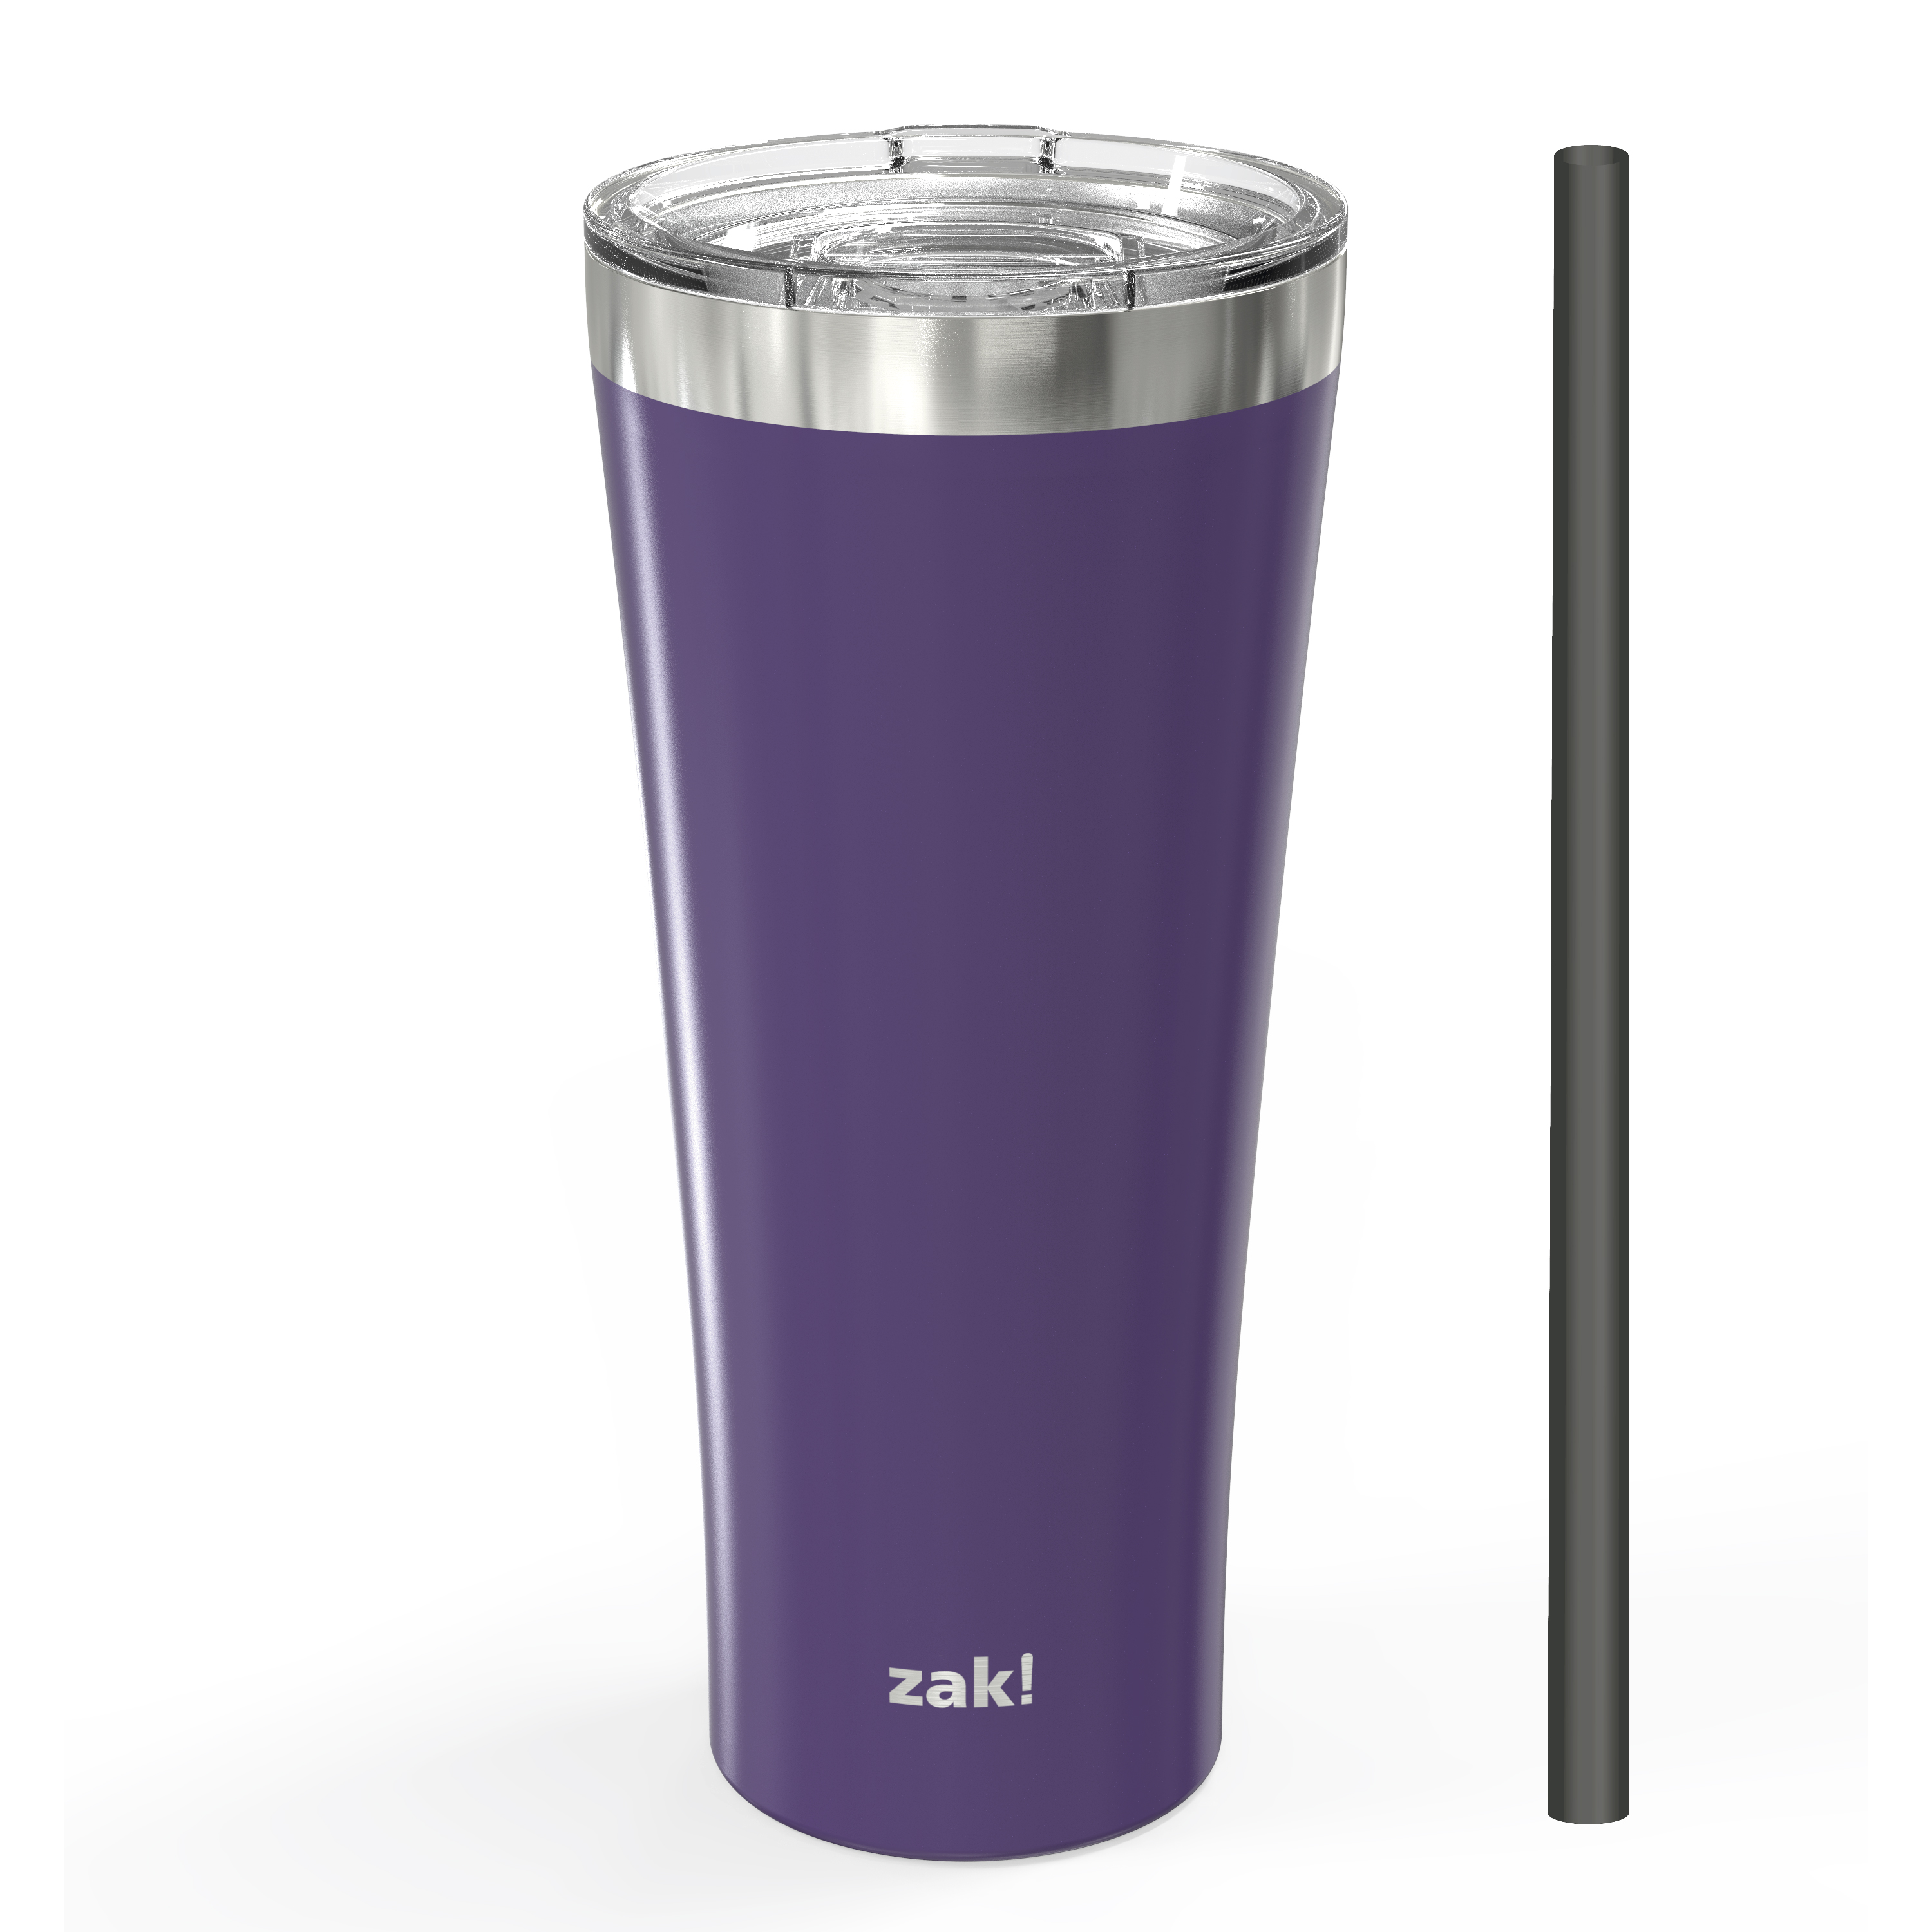 Alpine 30 ounce Stainless Steel Vacuum Insulated Tumbler with Straw, Viola slideshow image 1